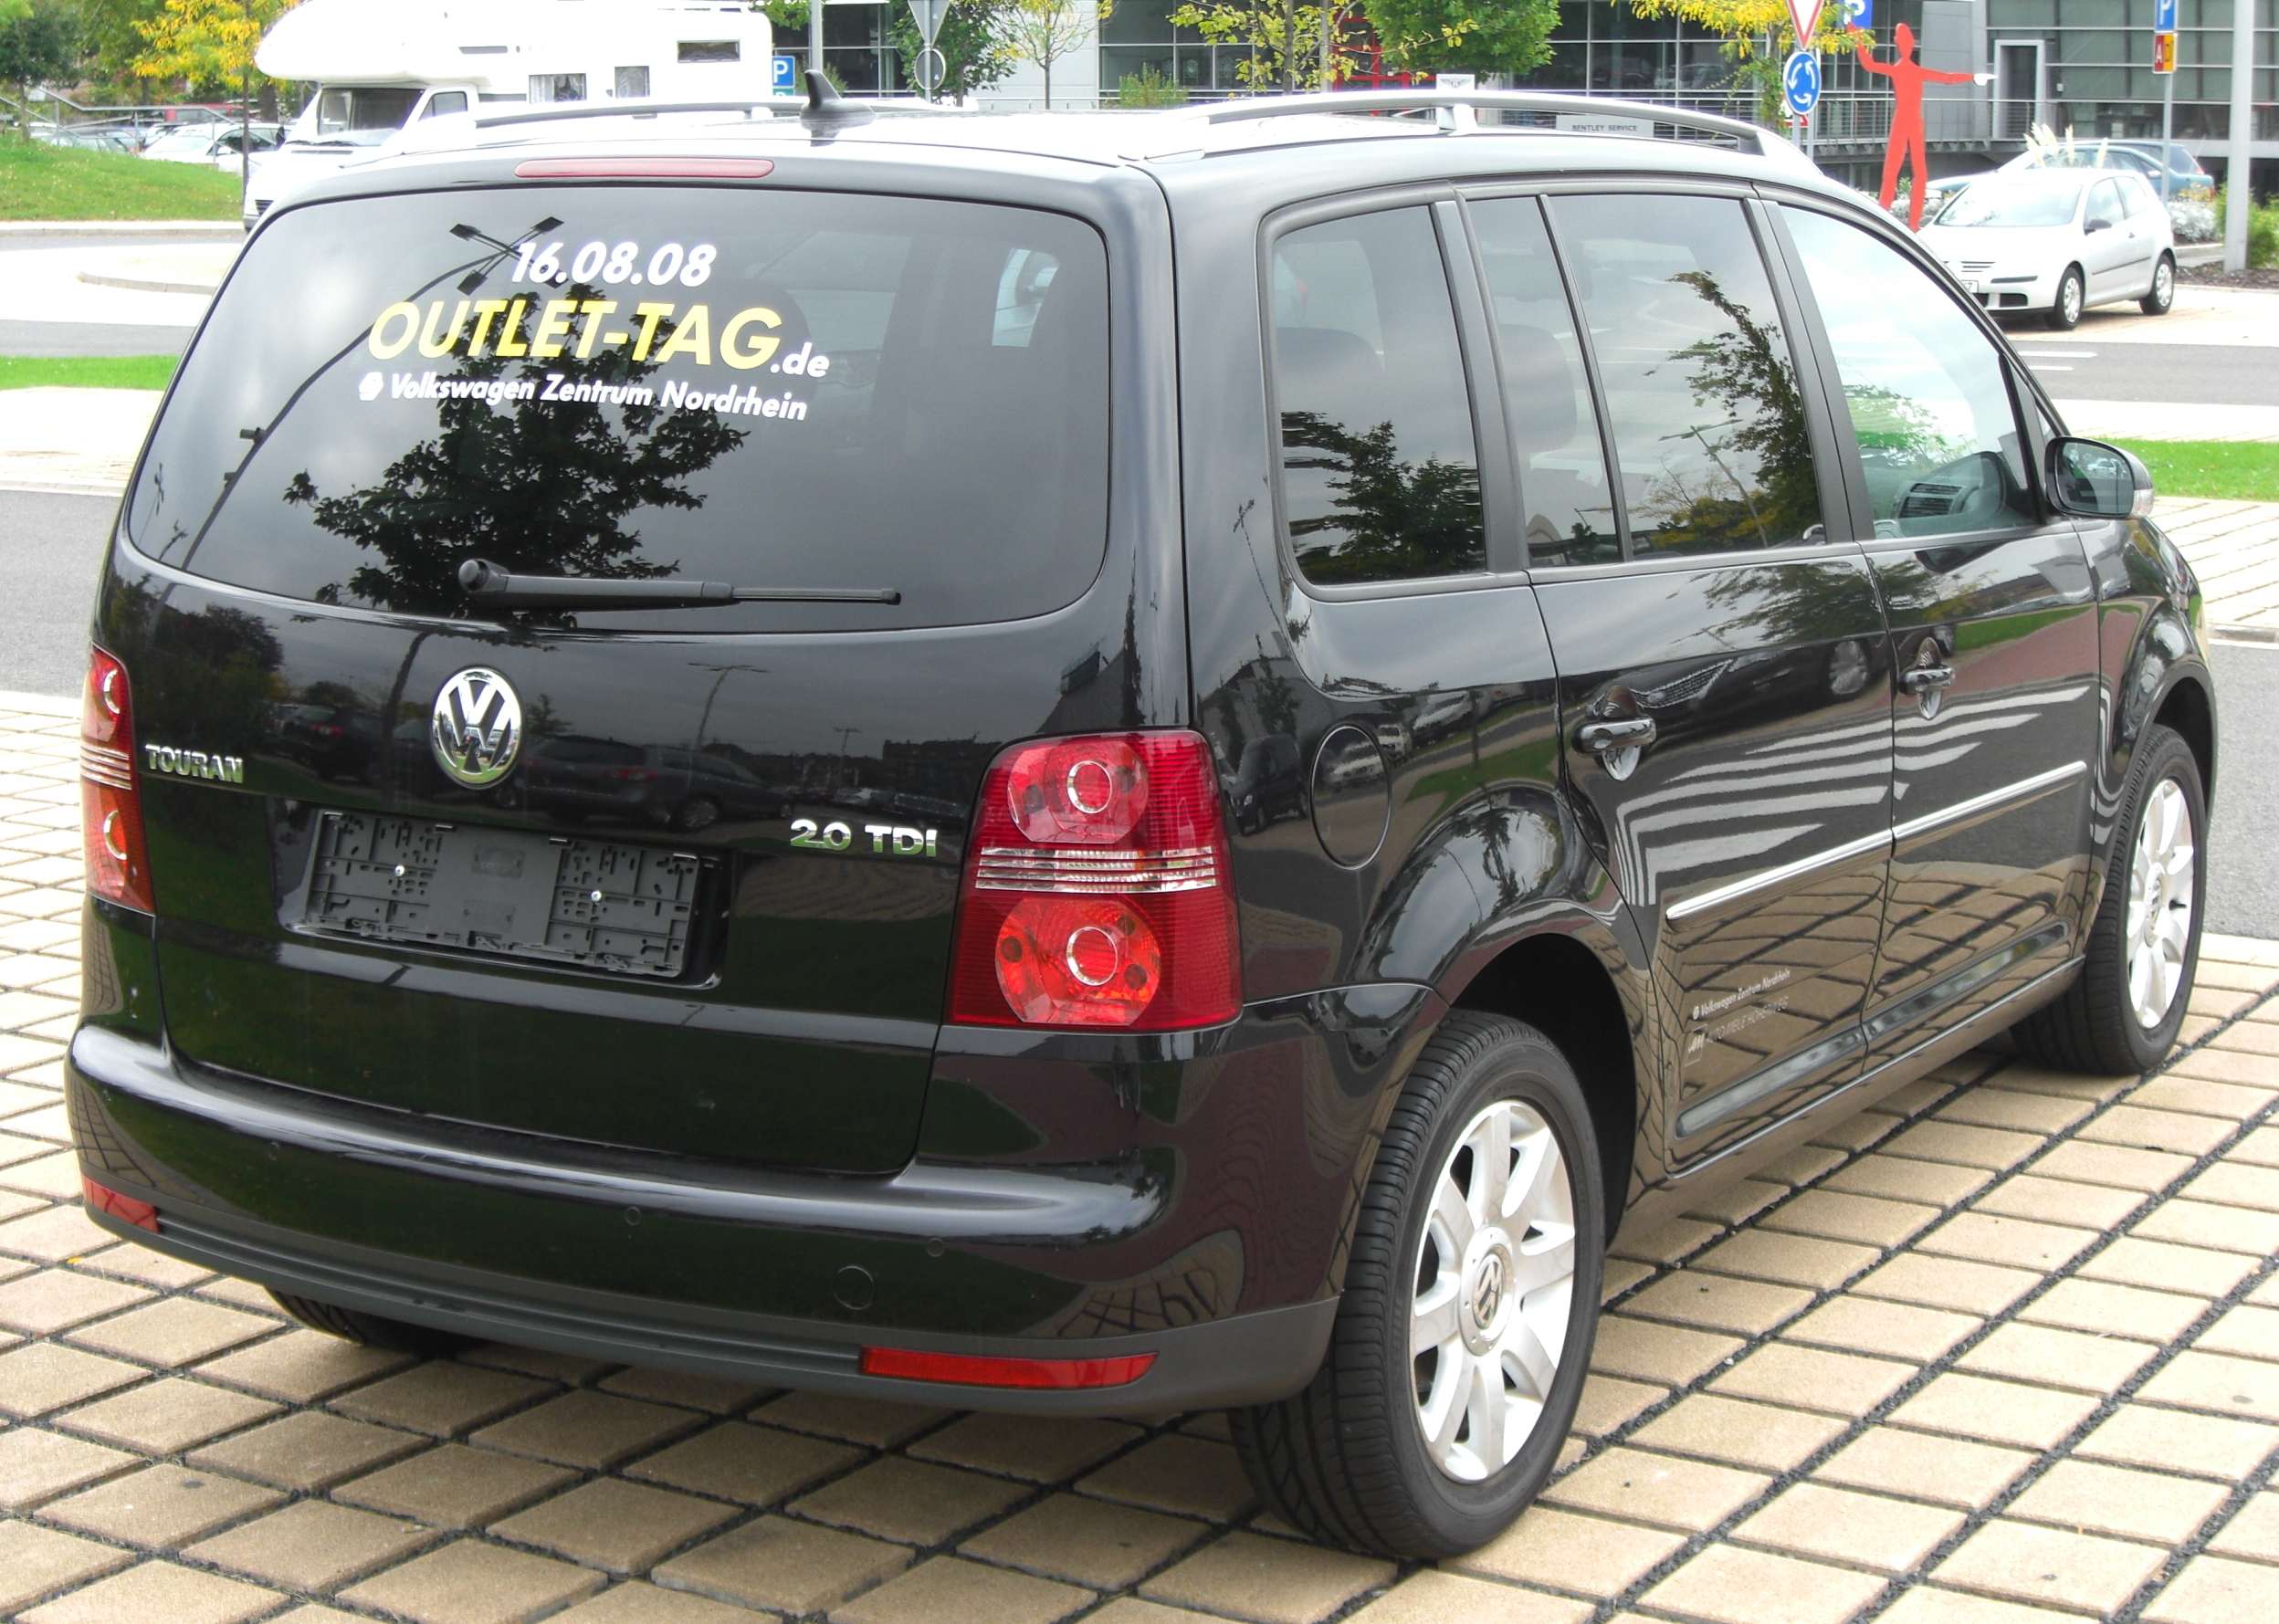 File Vw Touran 2 0 Tdi Facelift Rear 1 Jpg Wikimedia Commons